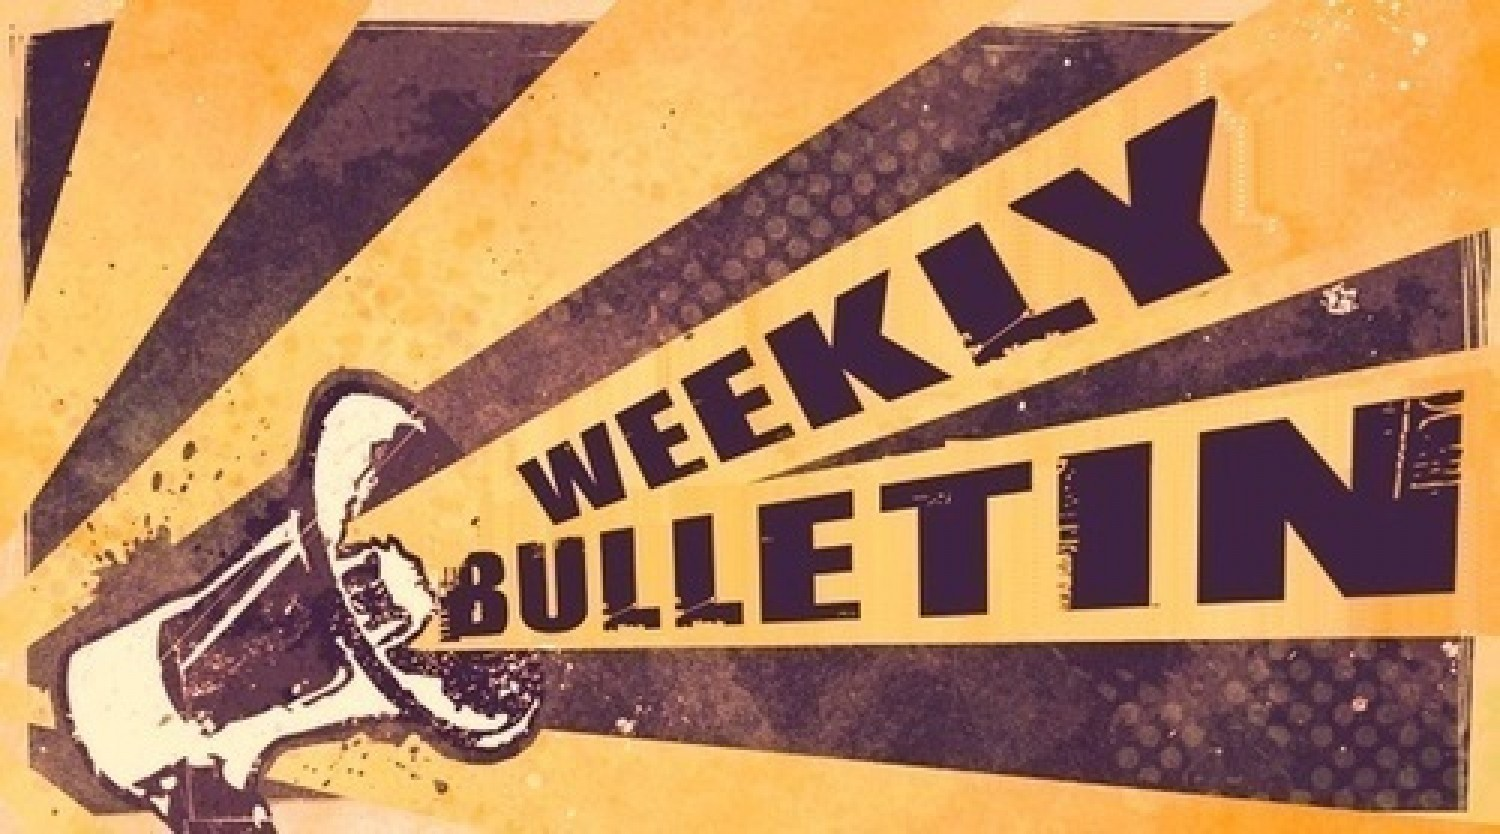 Weekly Bulletin May 17th